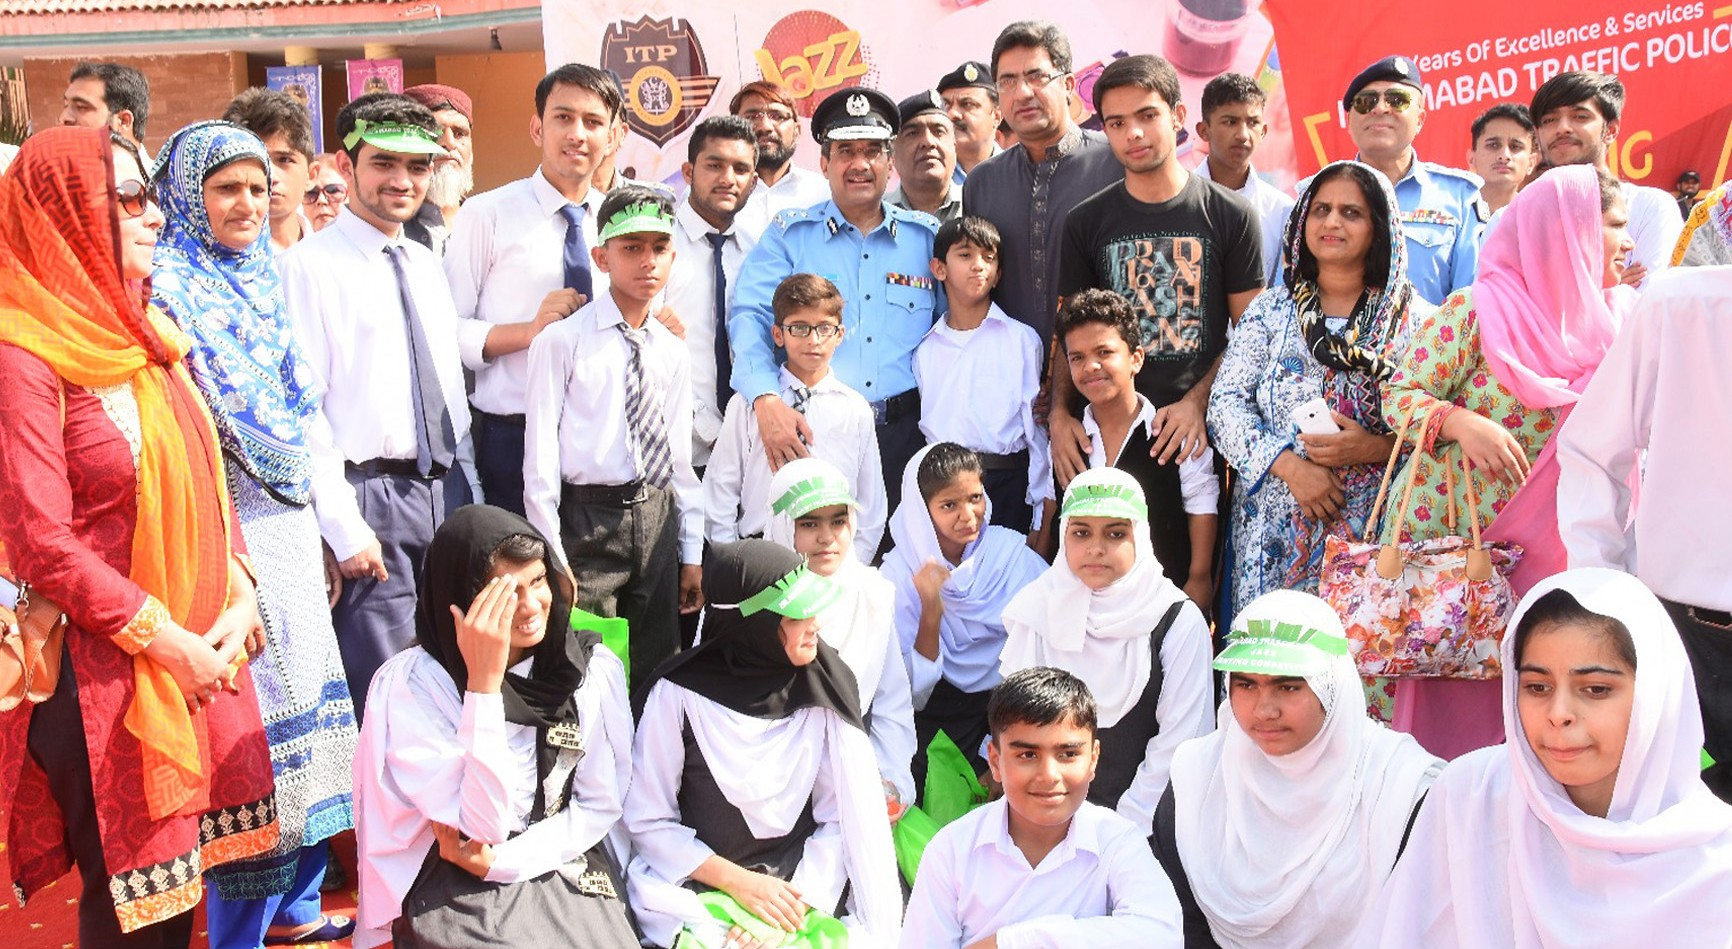 Jazz Organizes Children's Painting Competition in Partnership with Islamabad Traffic Police